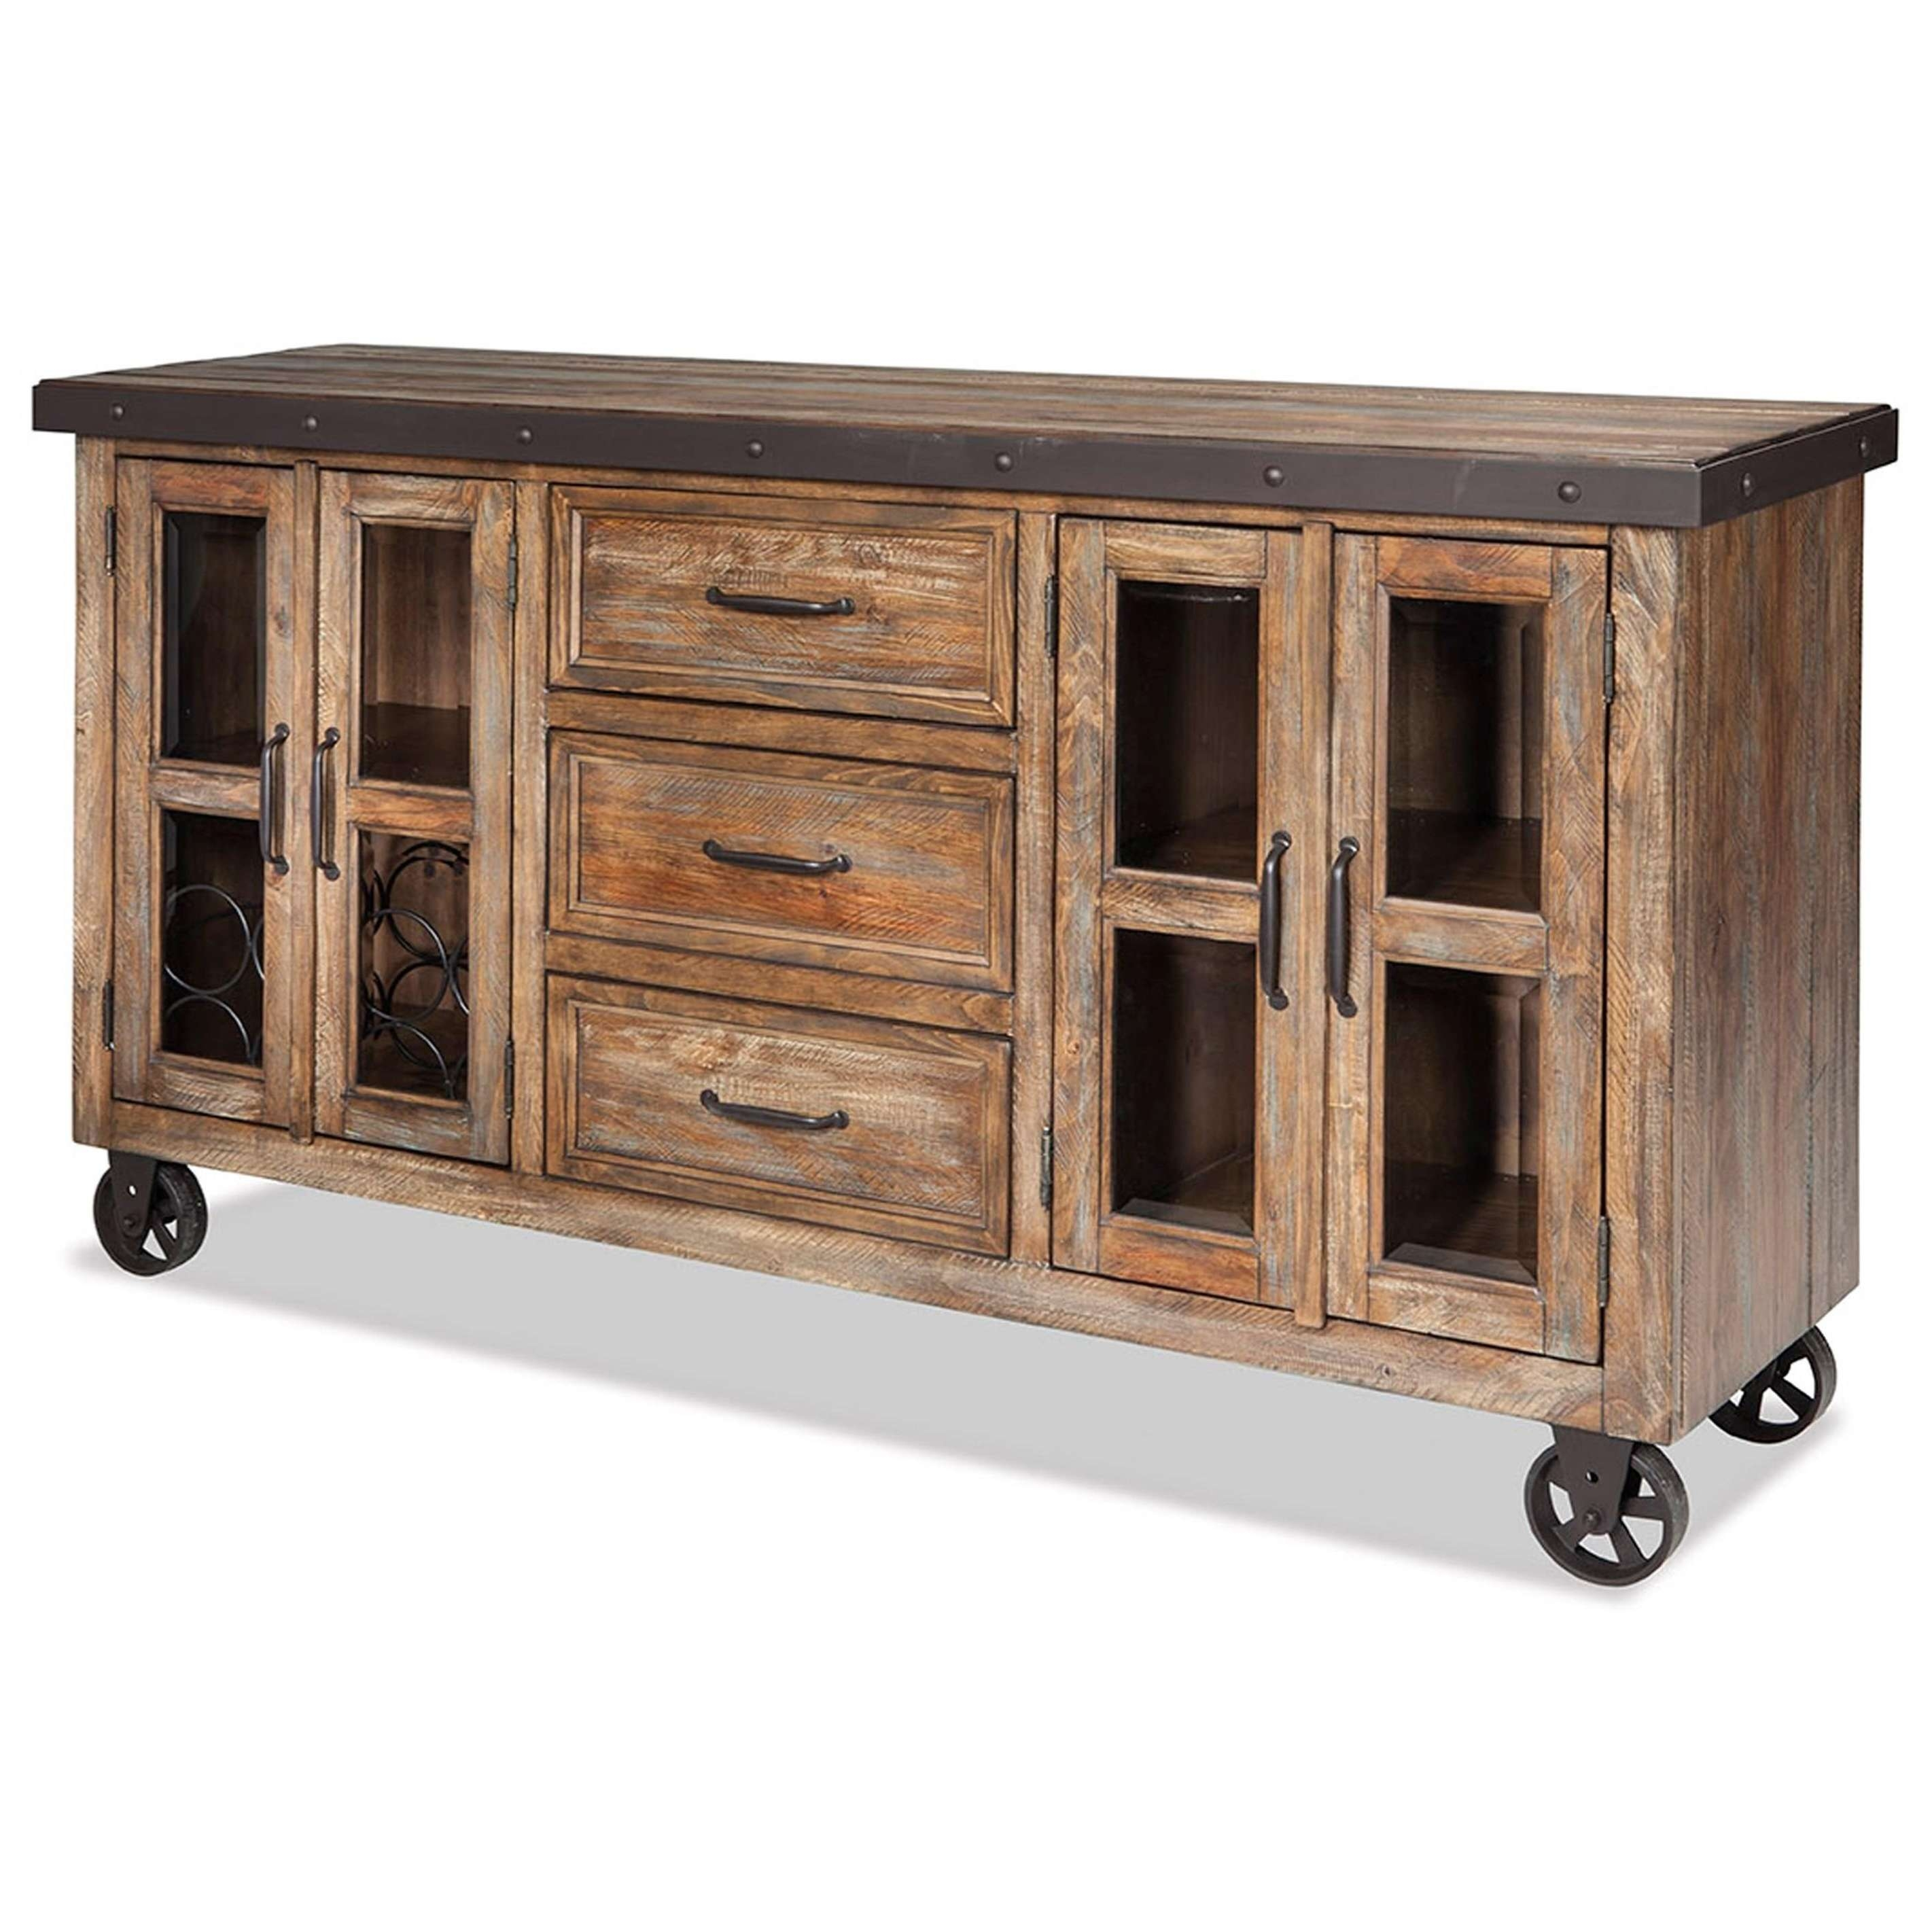 Intercon Taos Rustic Sideboard With Roll Up Media Drawer | Wayside Intended For Rustic Sideboards Furniture (View 4 of 20)